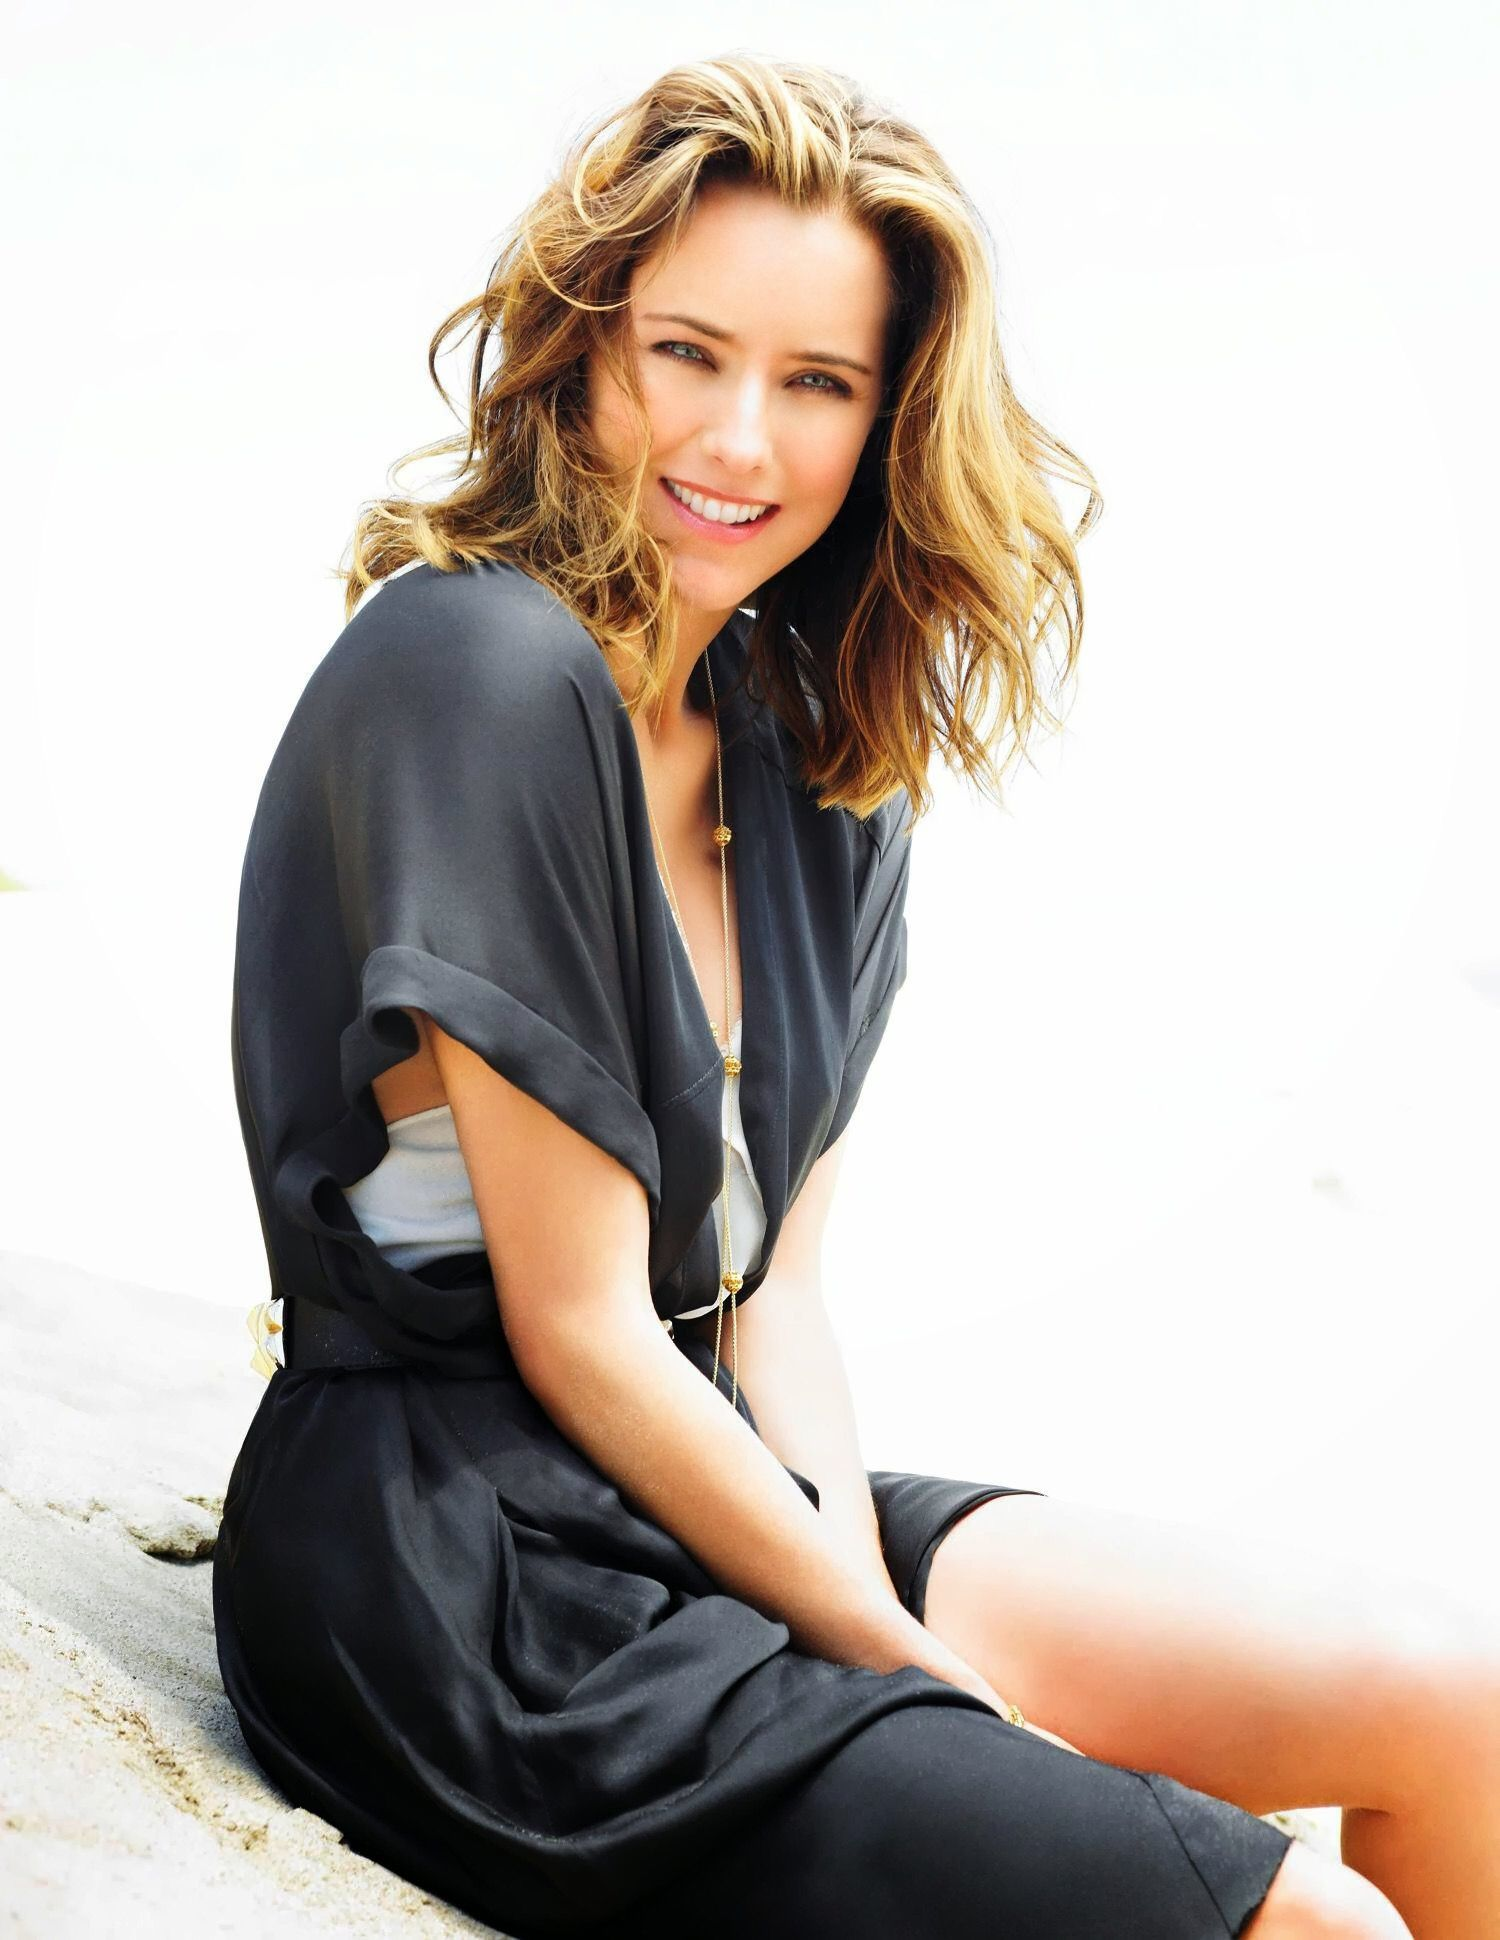 Images Tea Leoni nude (81 foto and video), Pussy, Hot, Feet, butt 2018